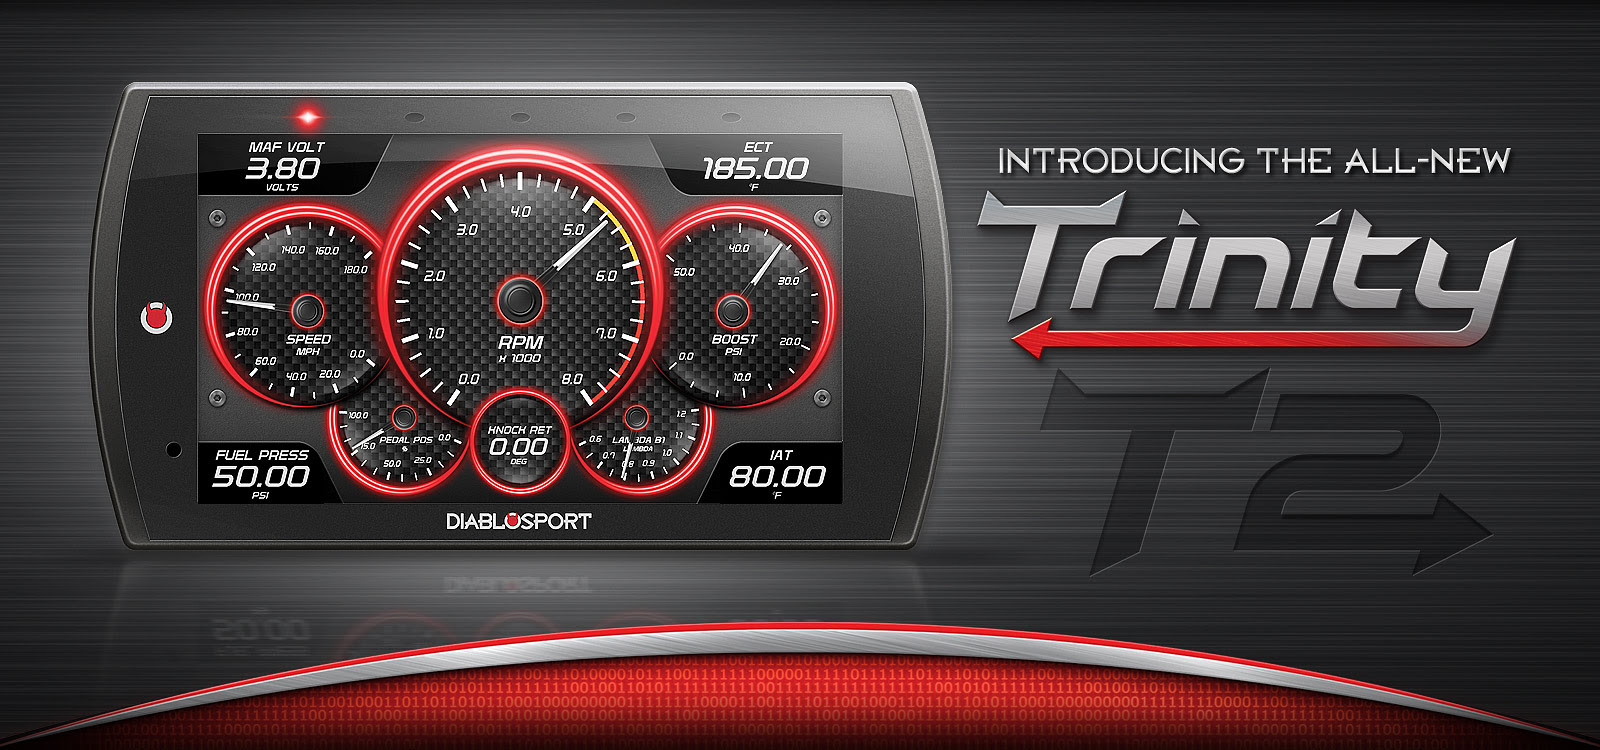 Want To Have A Better Grasp On Your Late Model Vehicle's Information? DiabloSport's Trinity T2 Is For You!